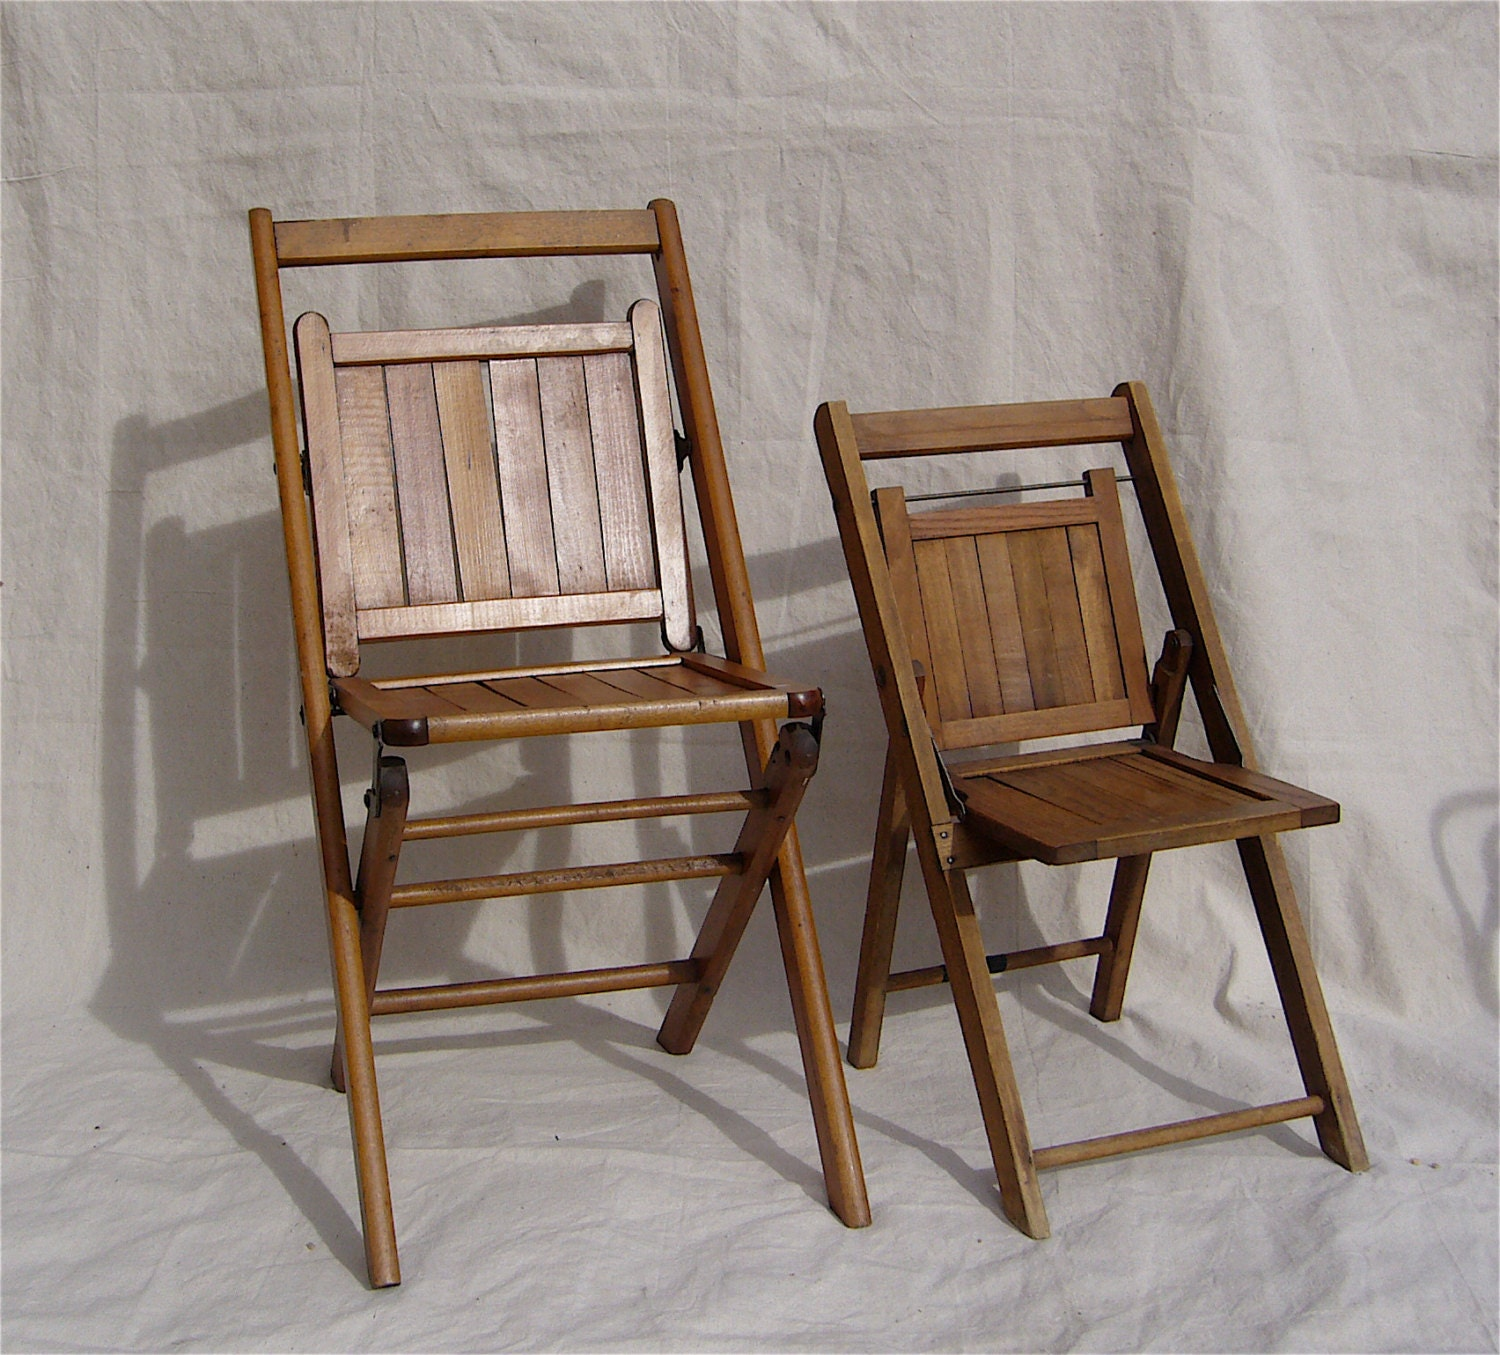 Antique Wood Folding Chairs - Luxury Wood Folding Chairs Elegant - Chair Ideas Chair Ideas